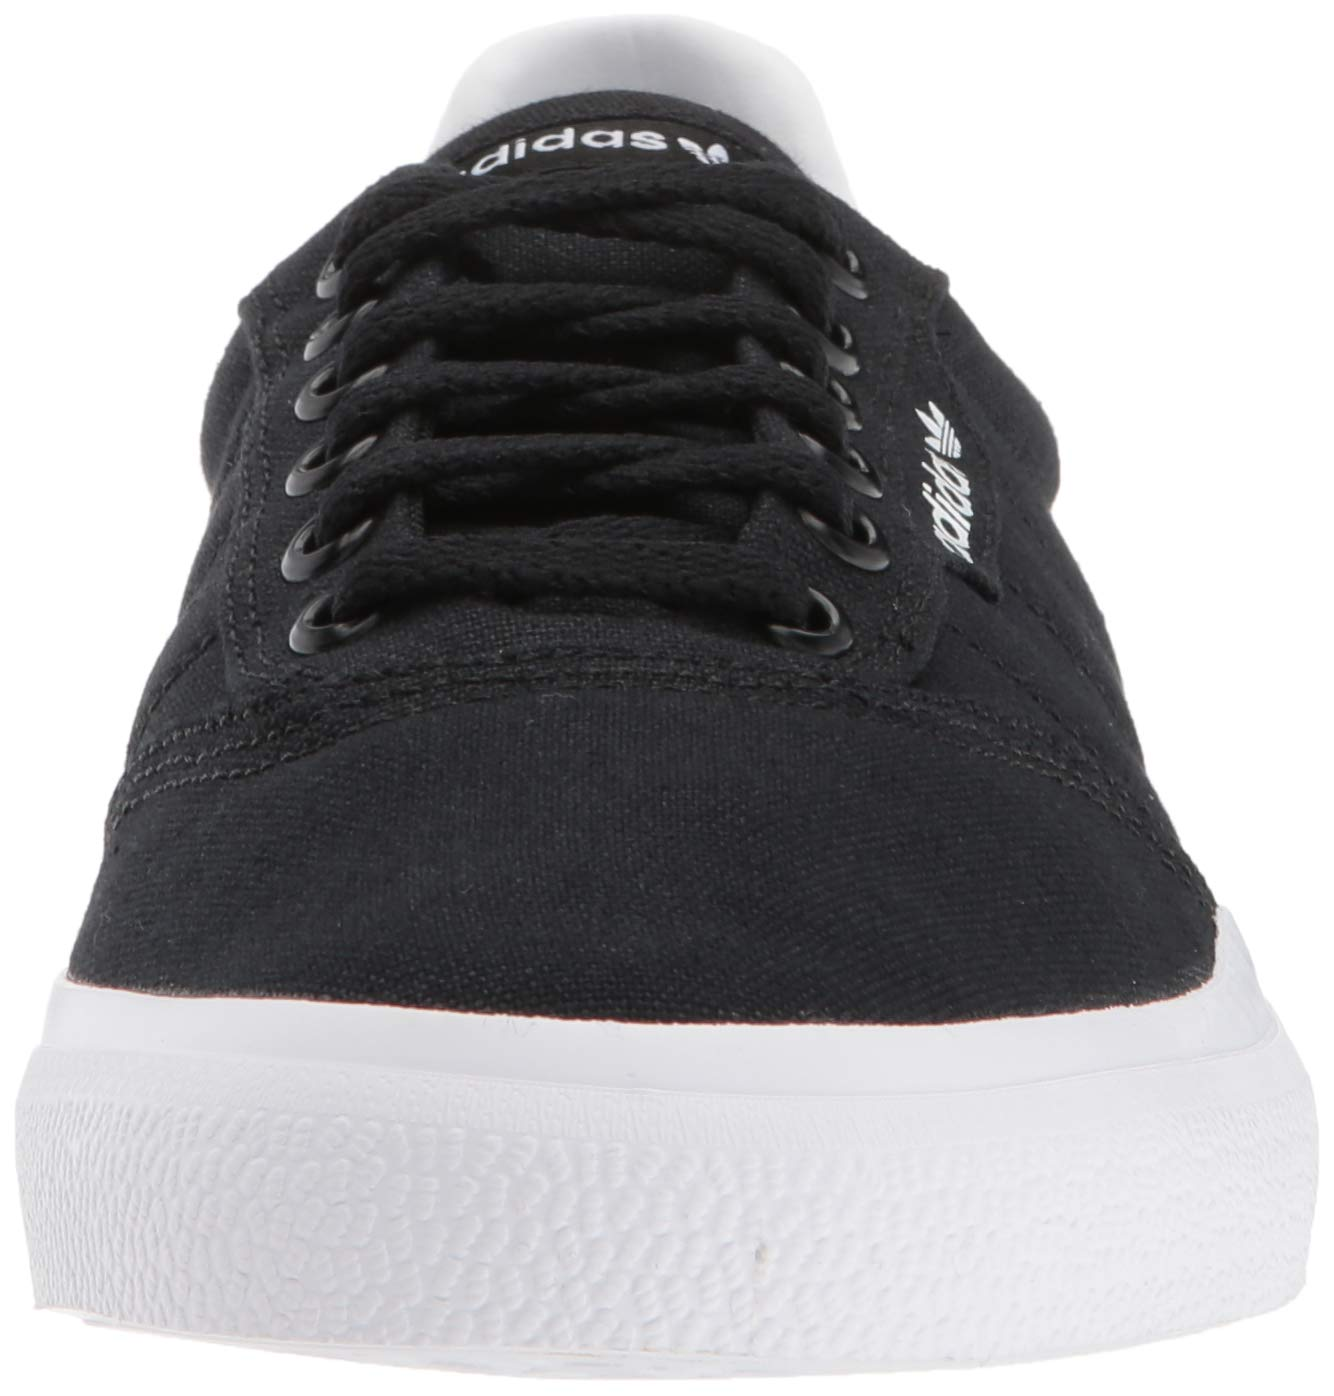 adidas Originals unisex-adult Black/White, 3 MC Skate Shoe 6.5 M US by adidas Originals (Image #4)